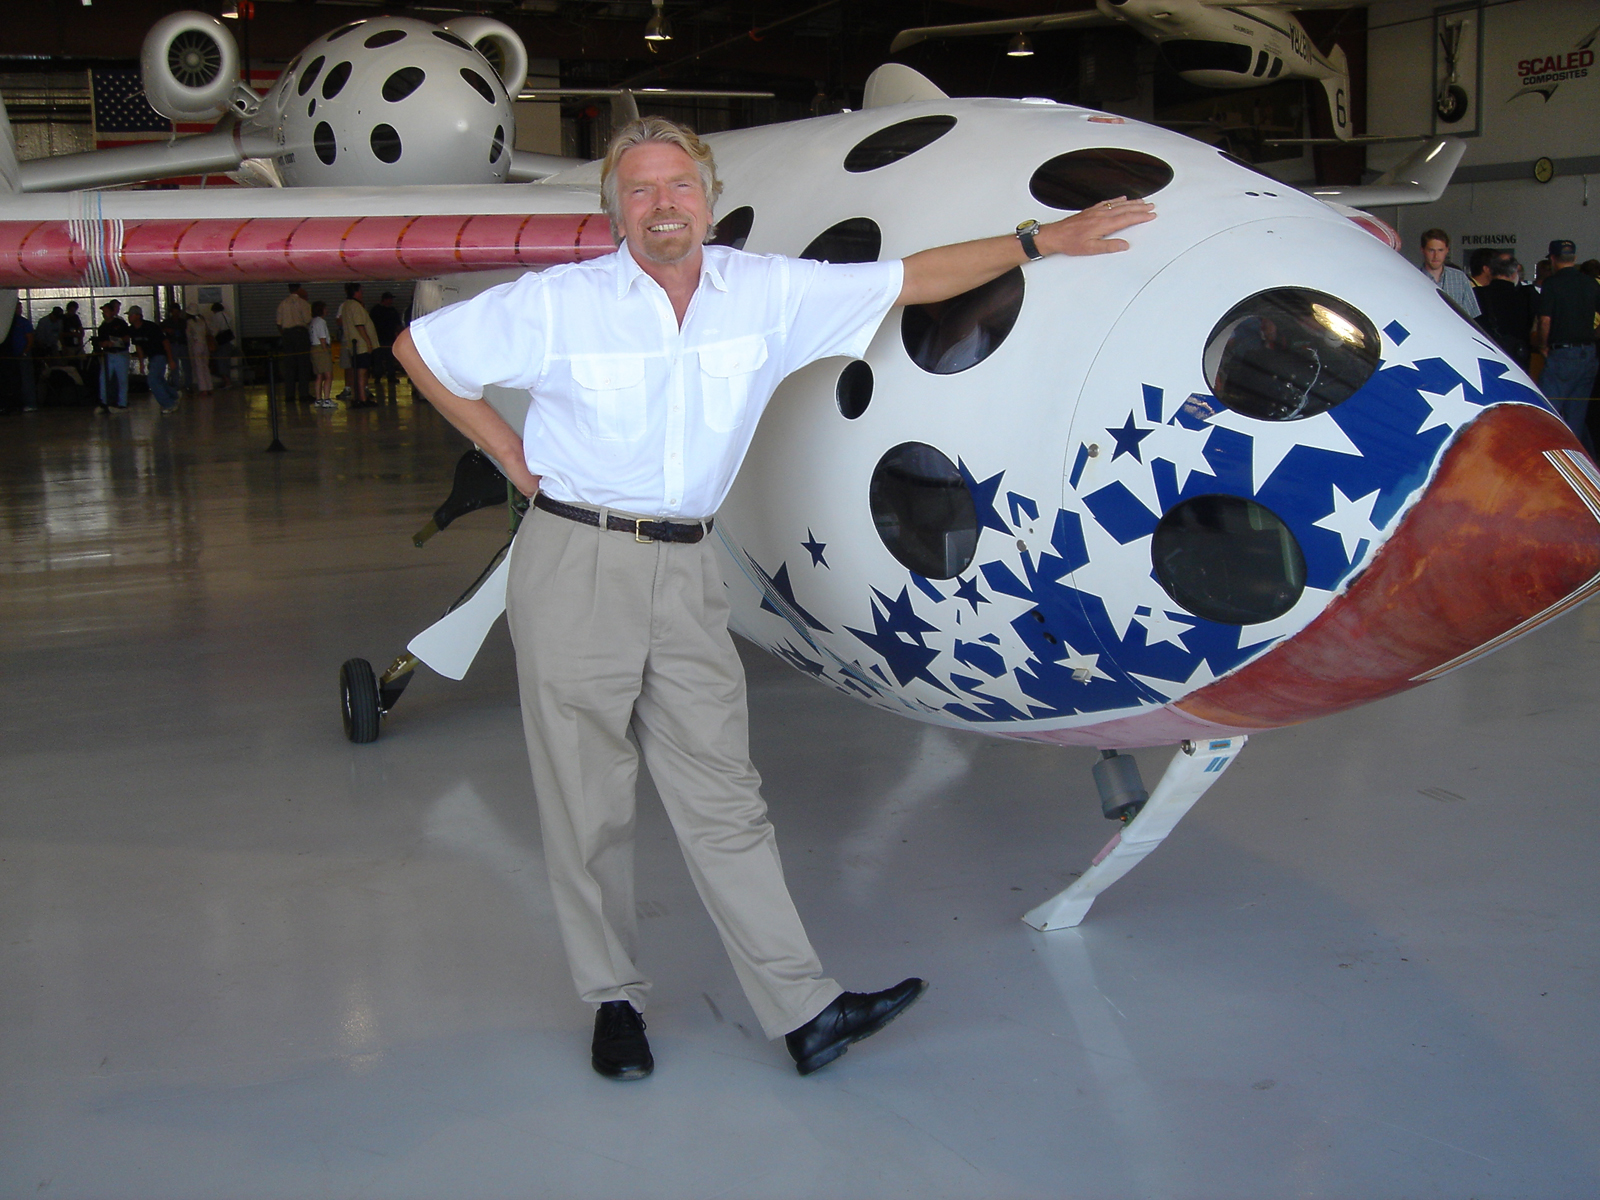 Richard Branson's Virgin Galactic Space Tourism Accepting Reservations